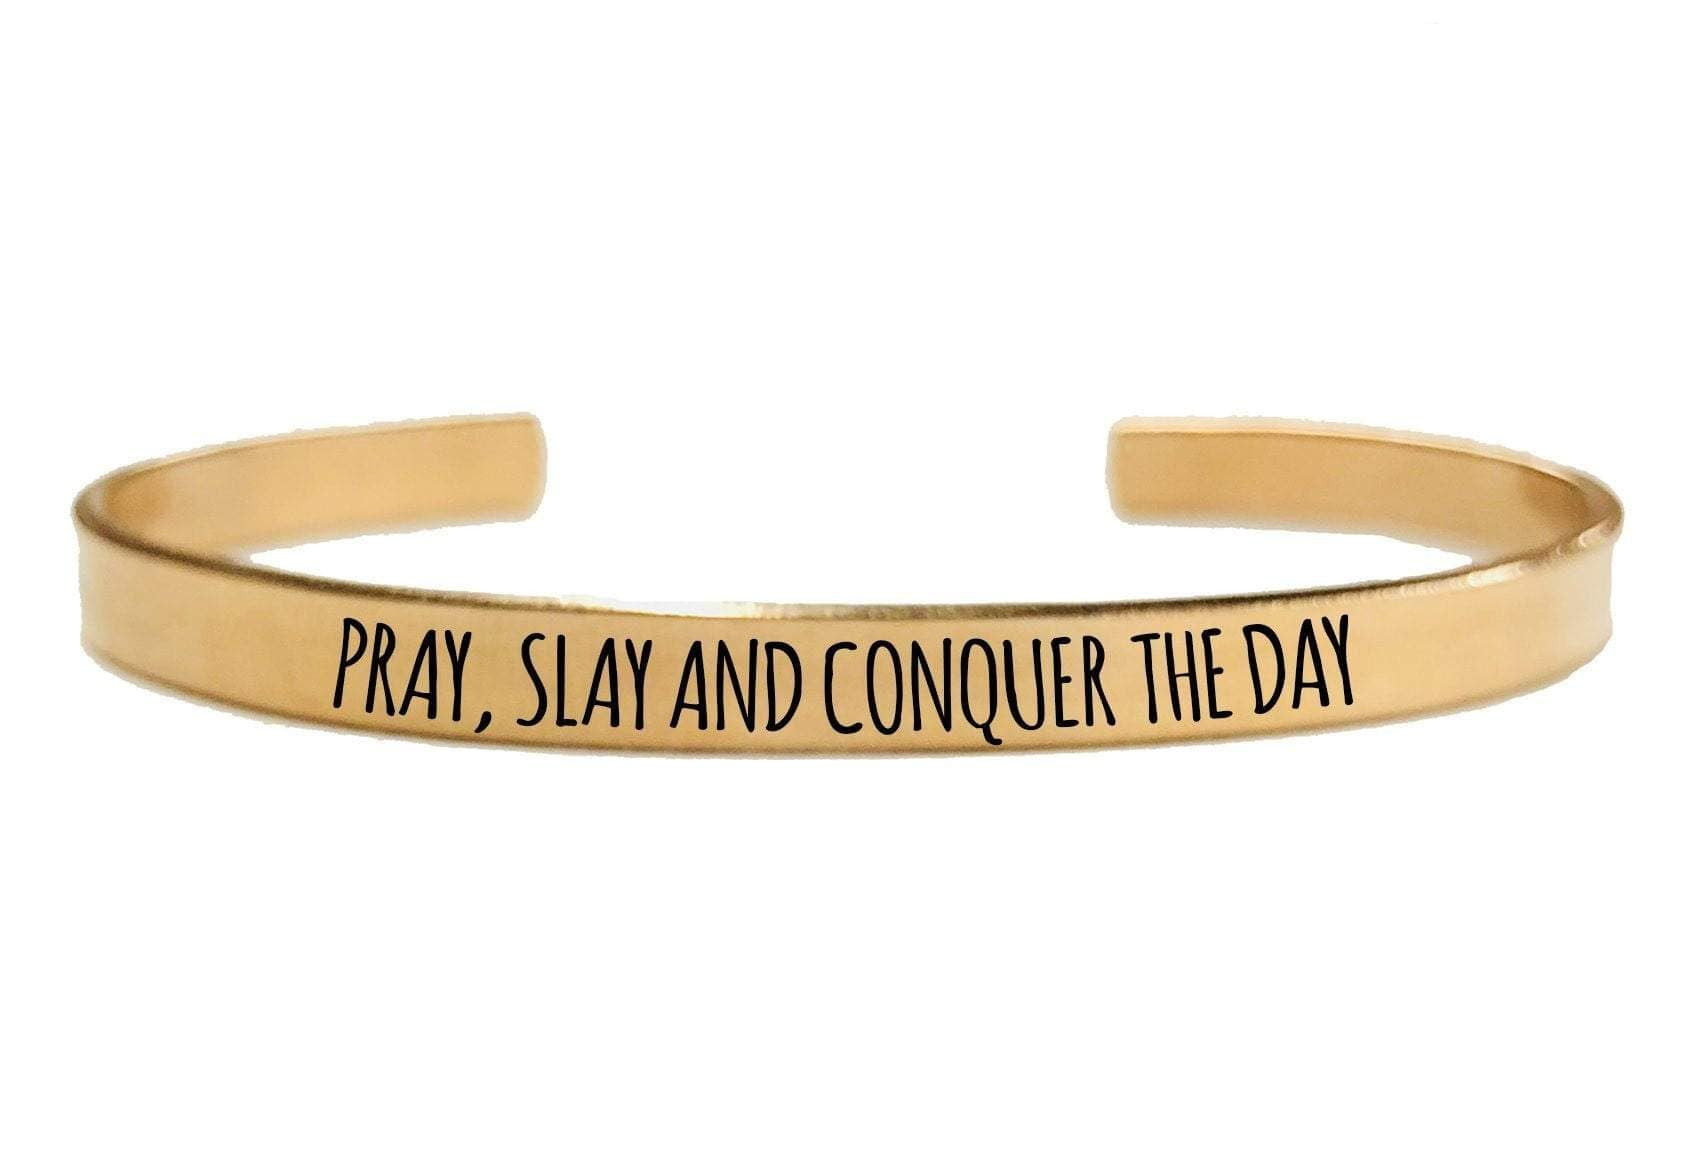 PRAY SLAY AND CONQUER THE DAY CUFF BRACELET